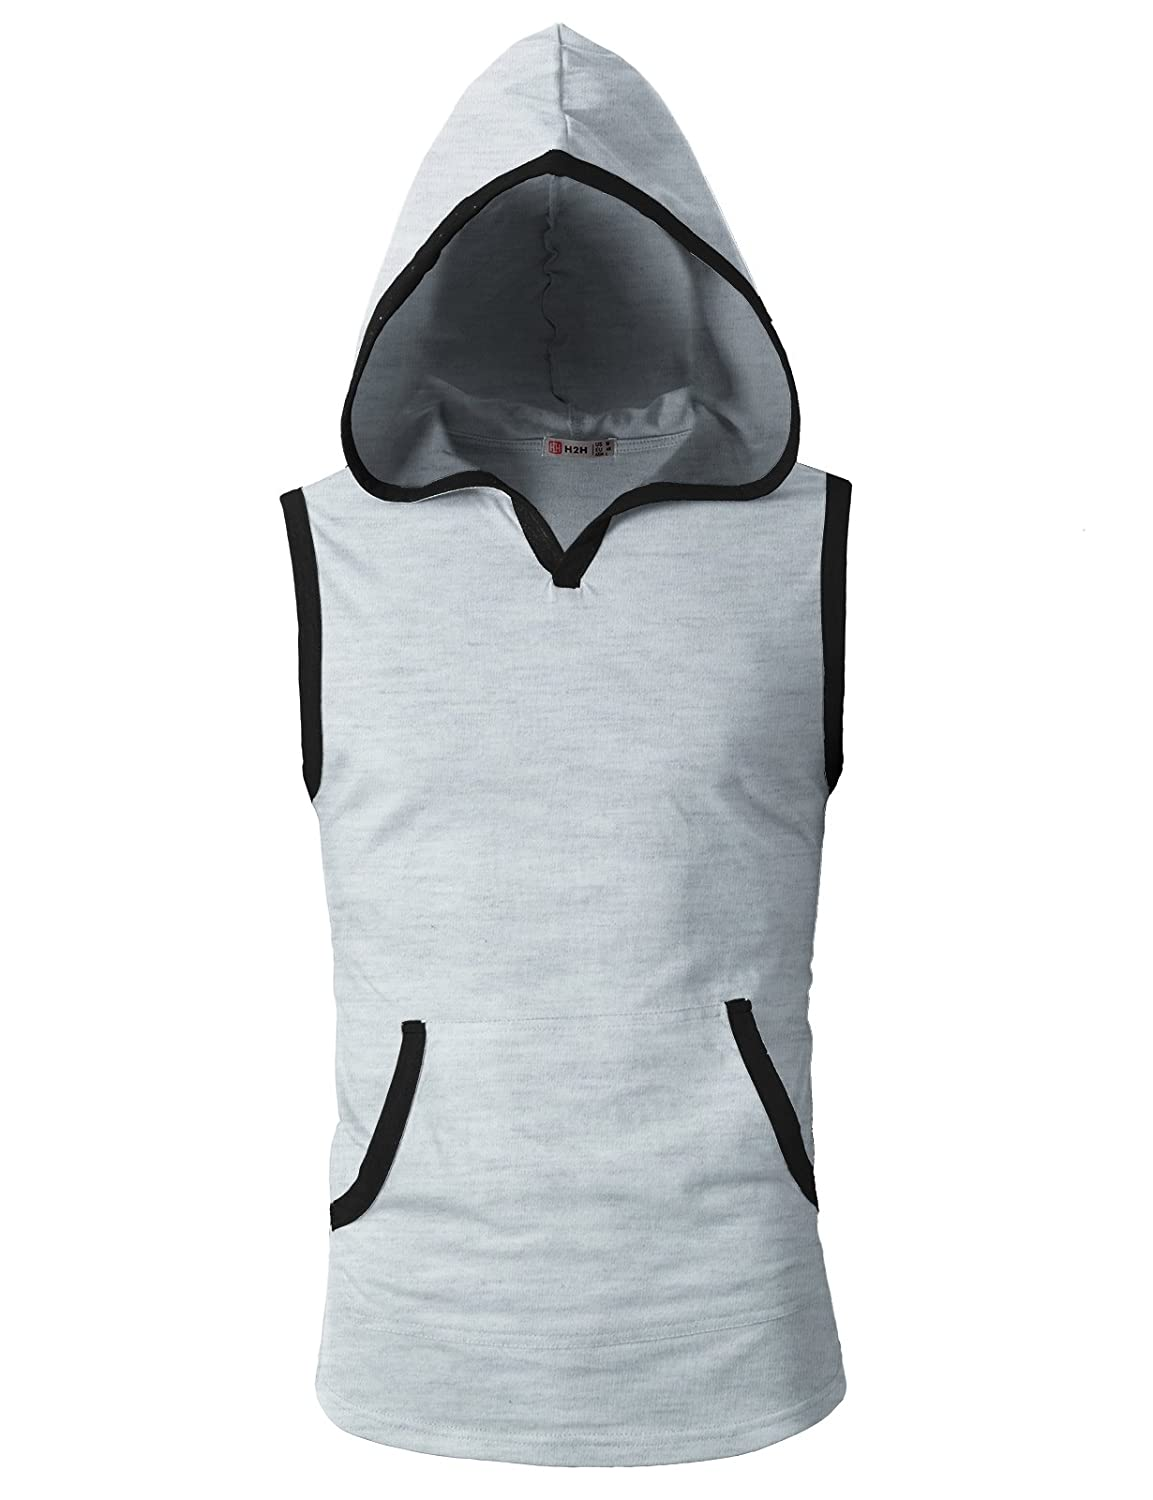 H2H Mens Casual Hoodie Tank Tops Sleeveless Shirts Gym Workout with Pockets